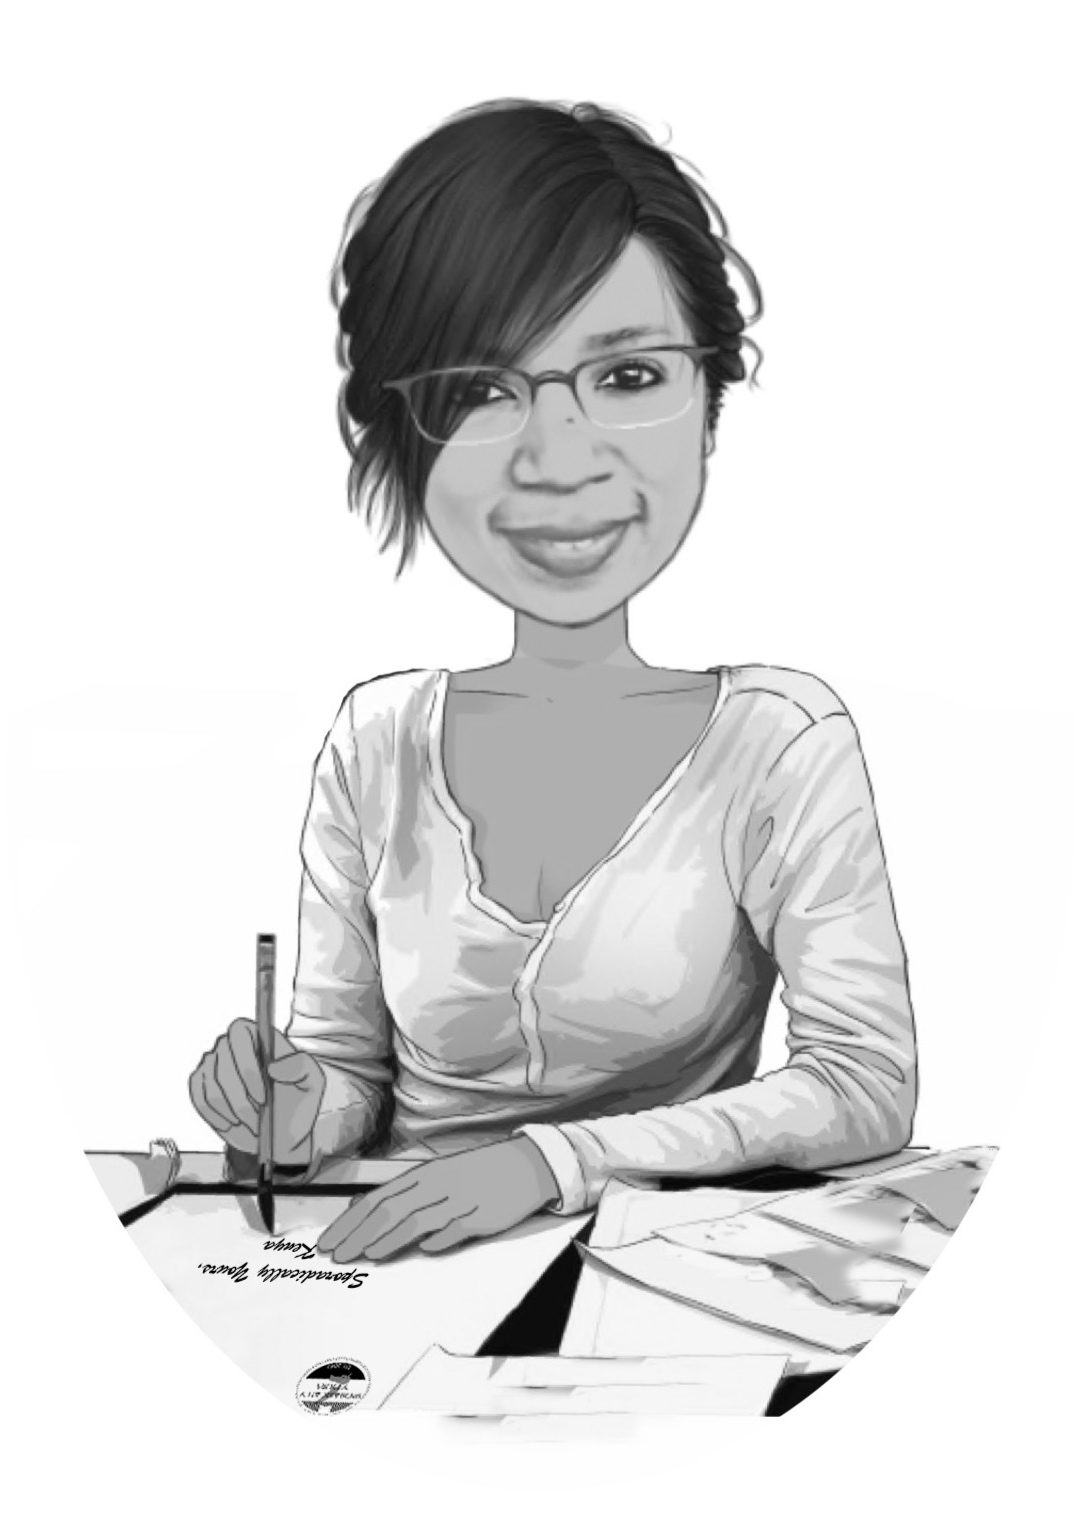 About Me - Favorite things include reading, writing, listening to music, technerding, drinking coffee, playing with essential oils and organizing stuff. Sporadically, I blog, write letters and freelance.I AM MY BRAND.I AM the genre that I write.I am Me and I am Sporadically Yours.~Kenya G. Johnson